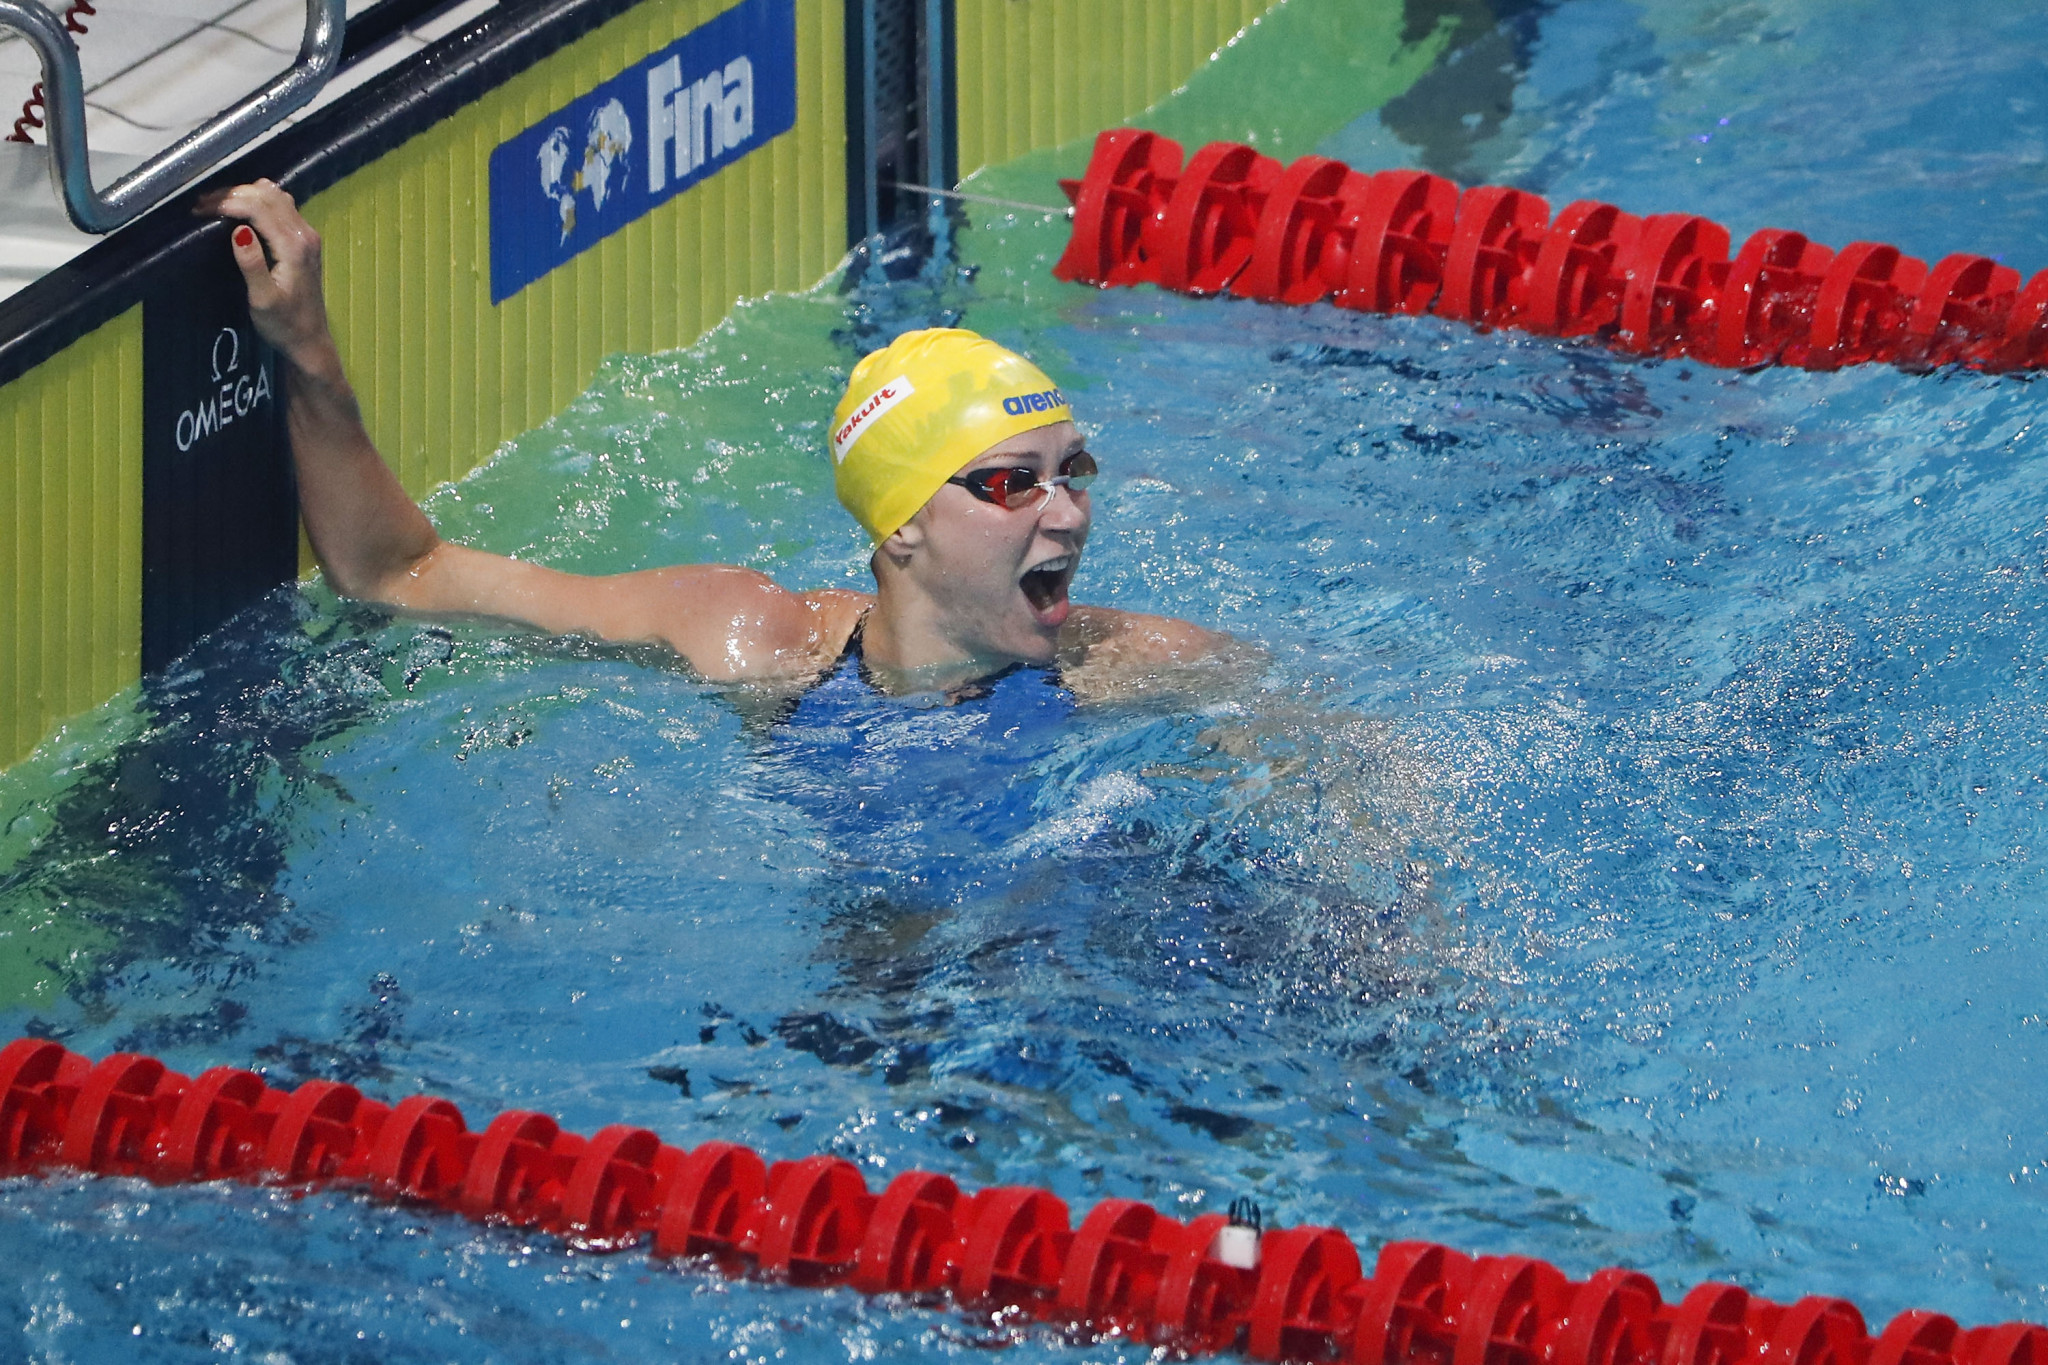 Sjöström secures two wins on final day of FINA World Cup in Beijing